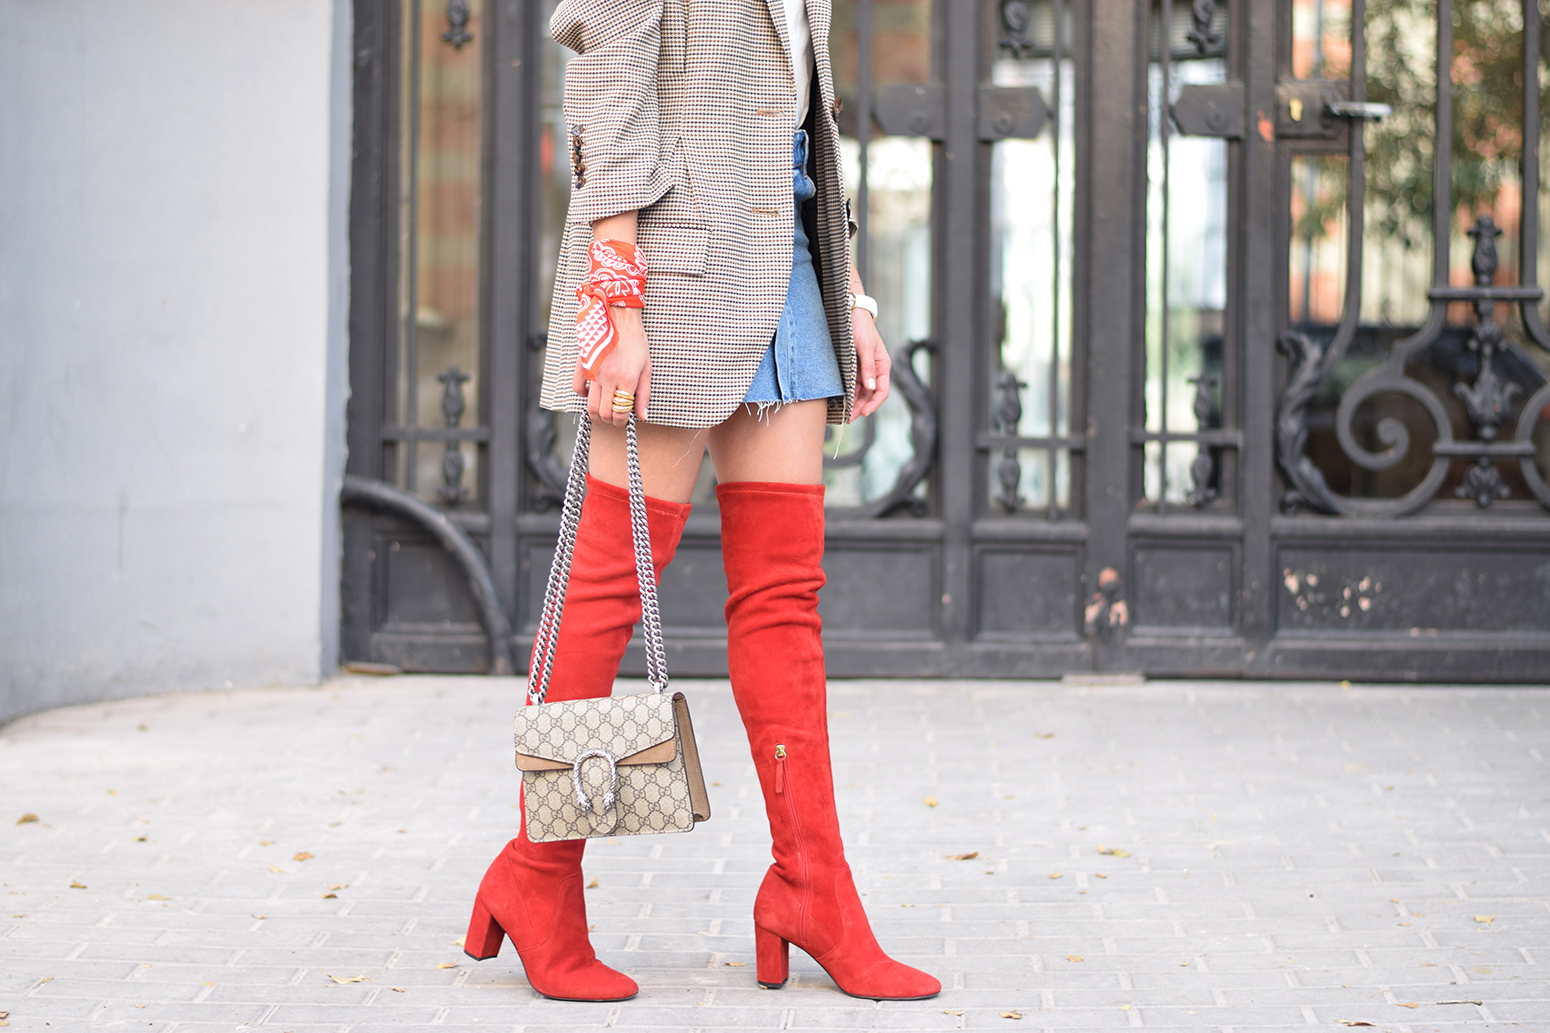 Houndstooth blazer denim skirt gucci bag red over the knee boots autumn outfit style fashion19